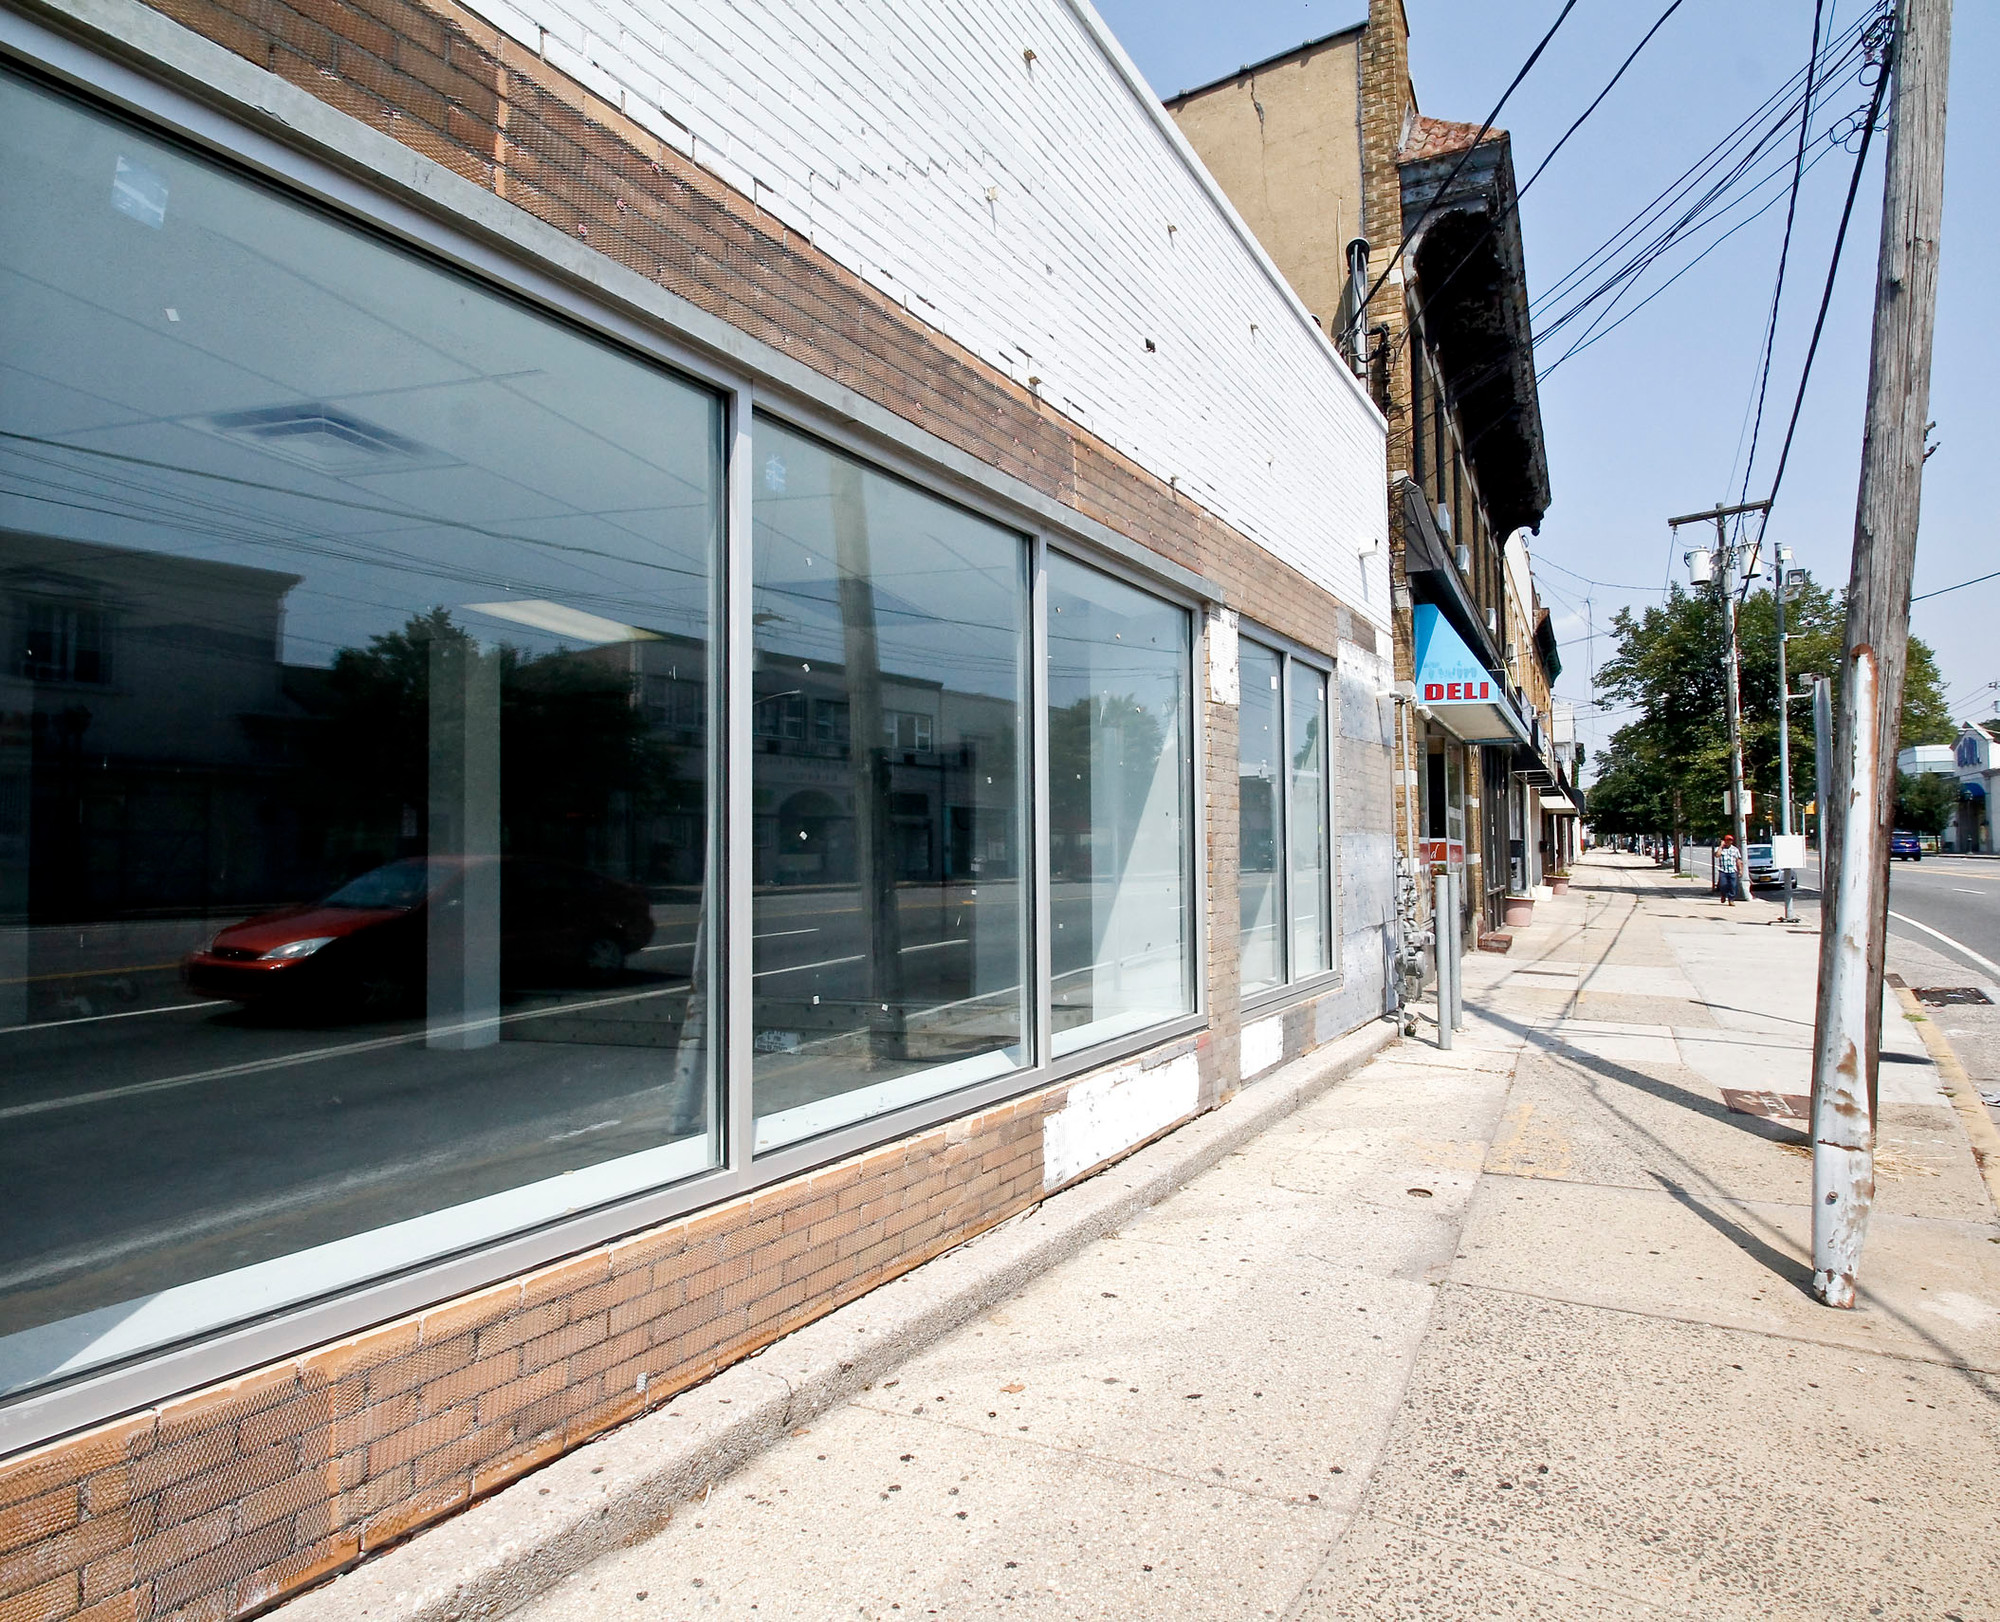 Vacant storefronts remain a problem along Grand Avenue